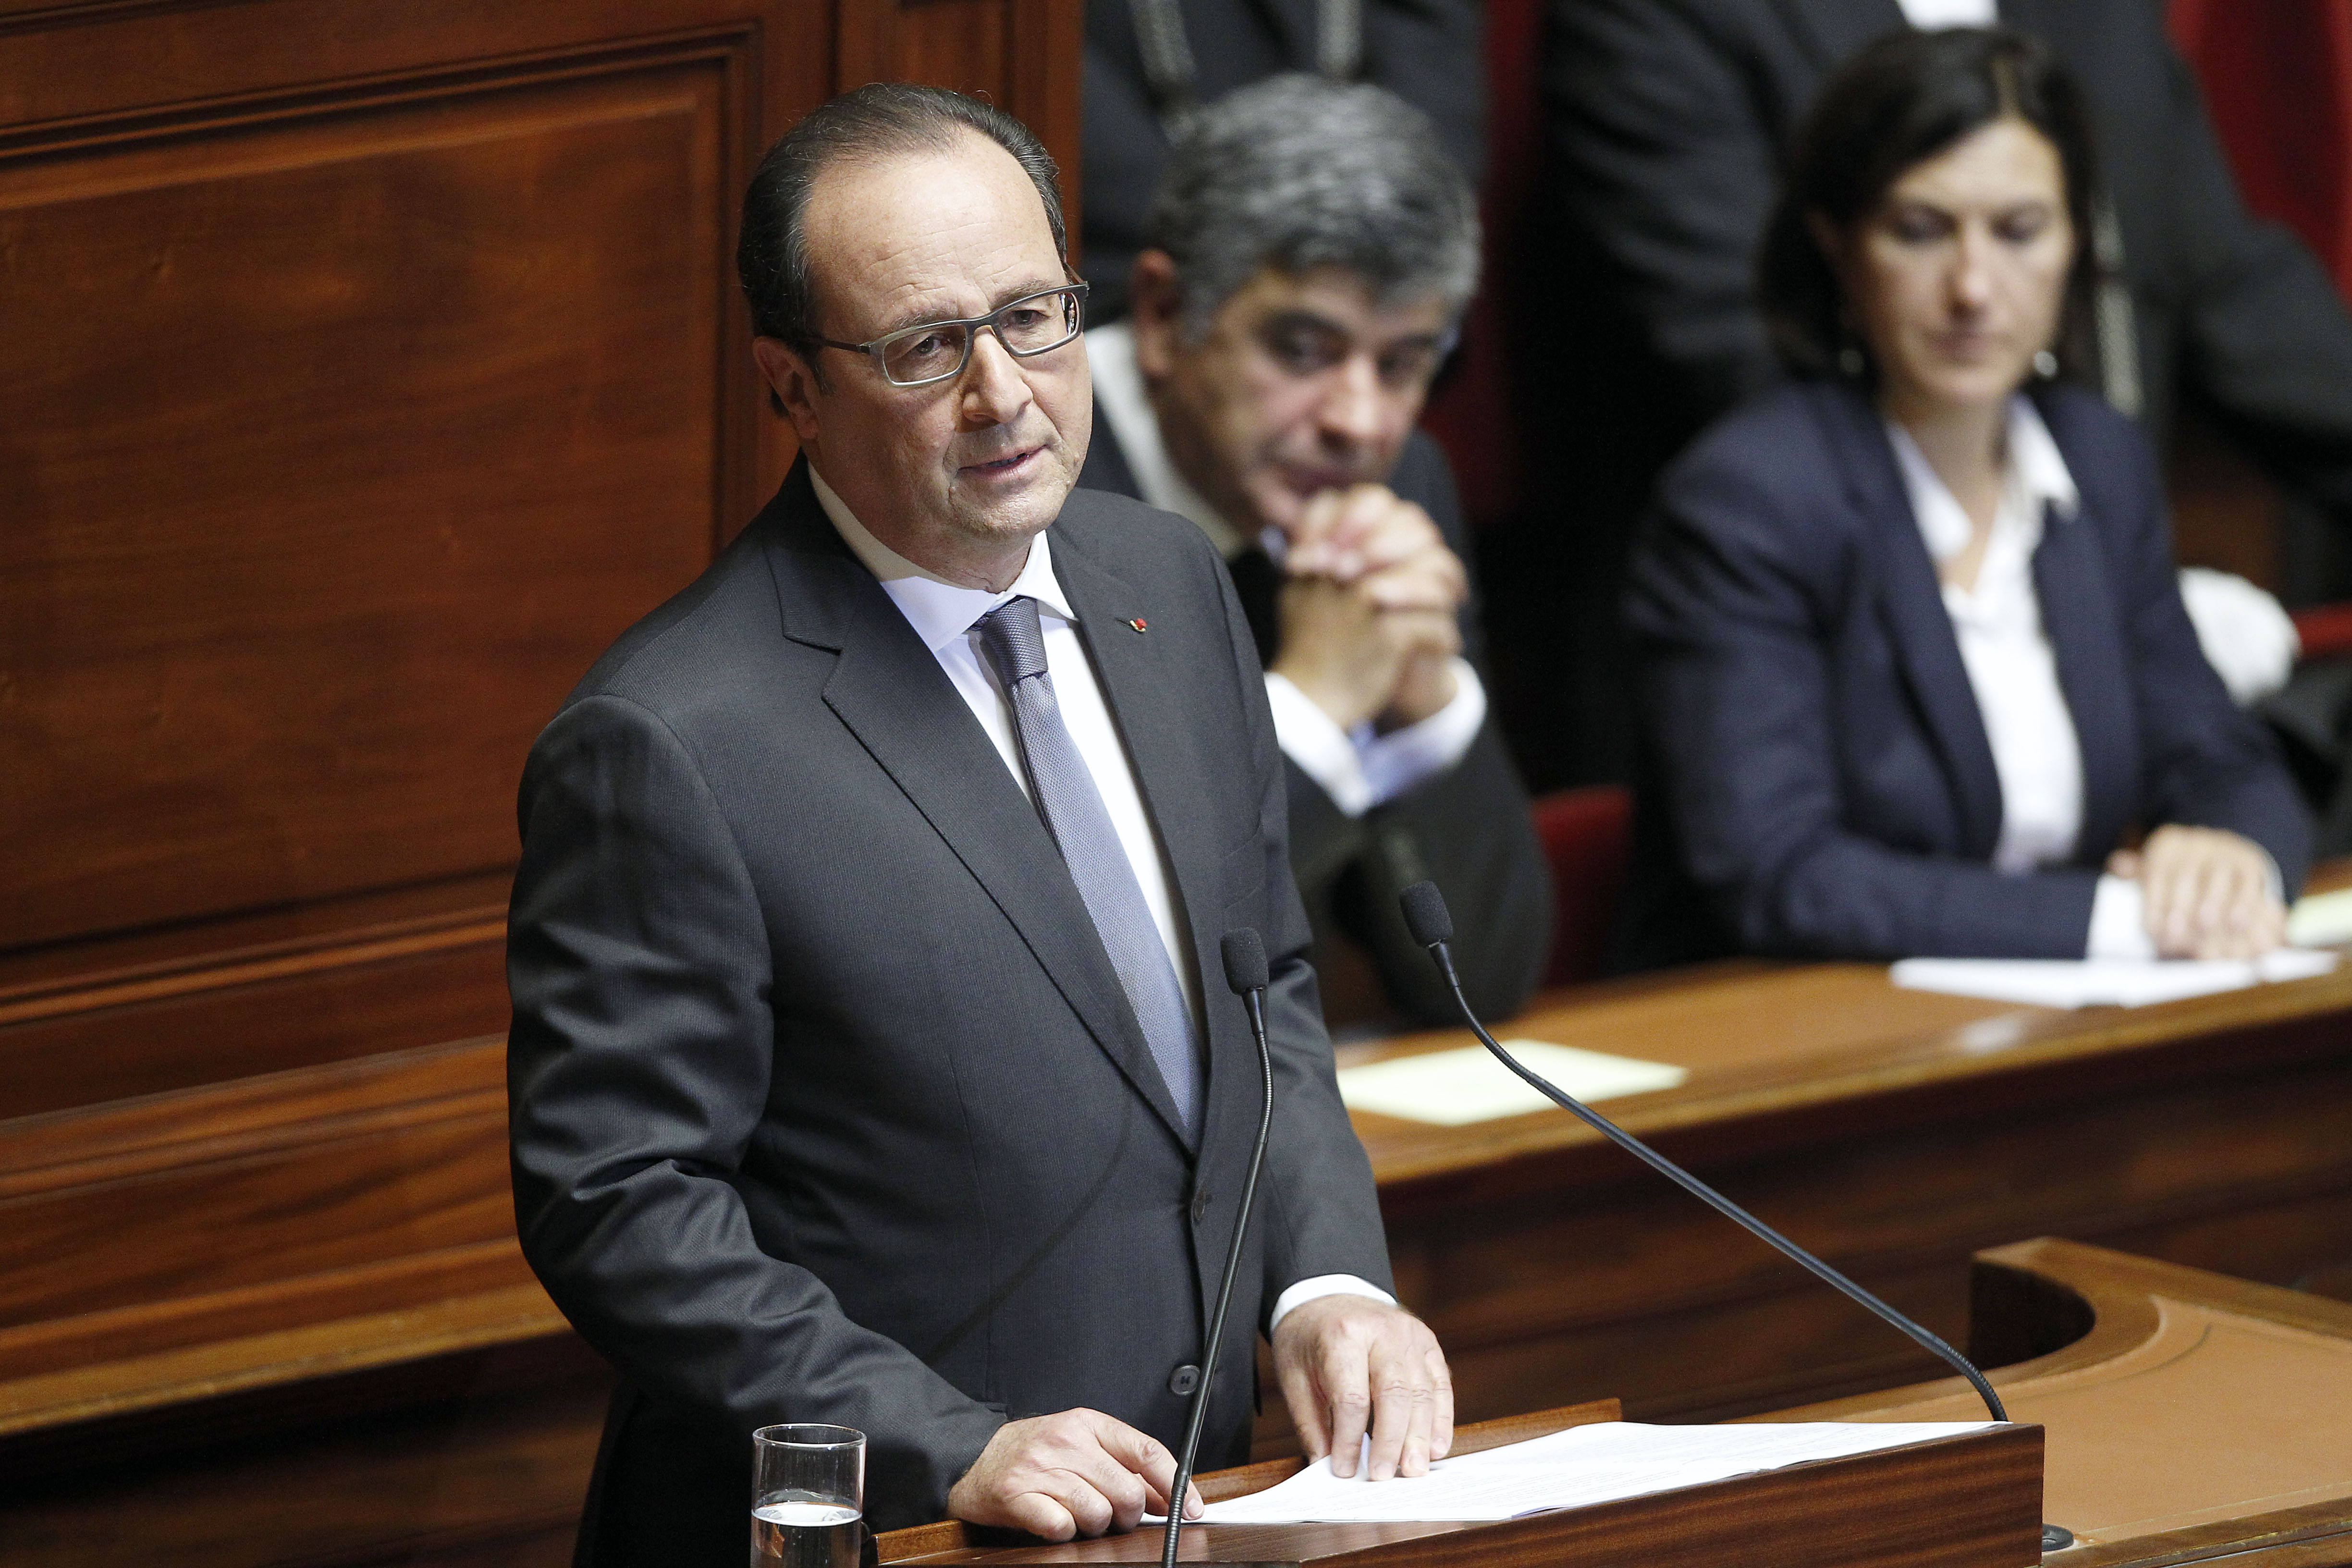 French President Francois Hollande delivers a speech during an exceptional joint gathering of both of the French houses of parliament on November 16, 2015 in Versailles, France.